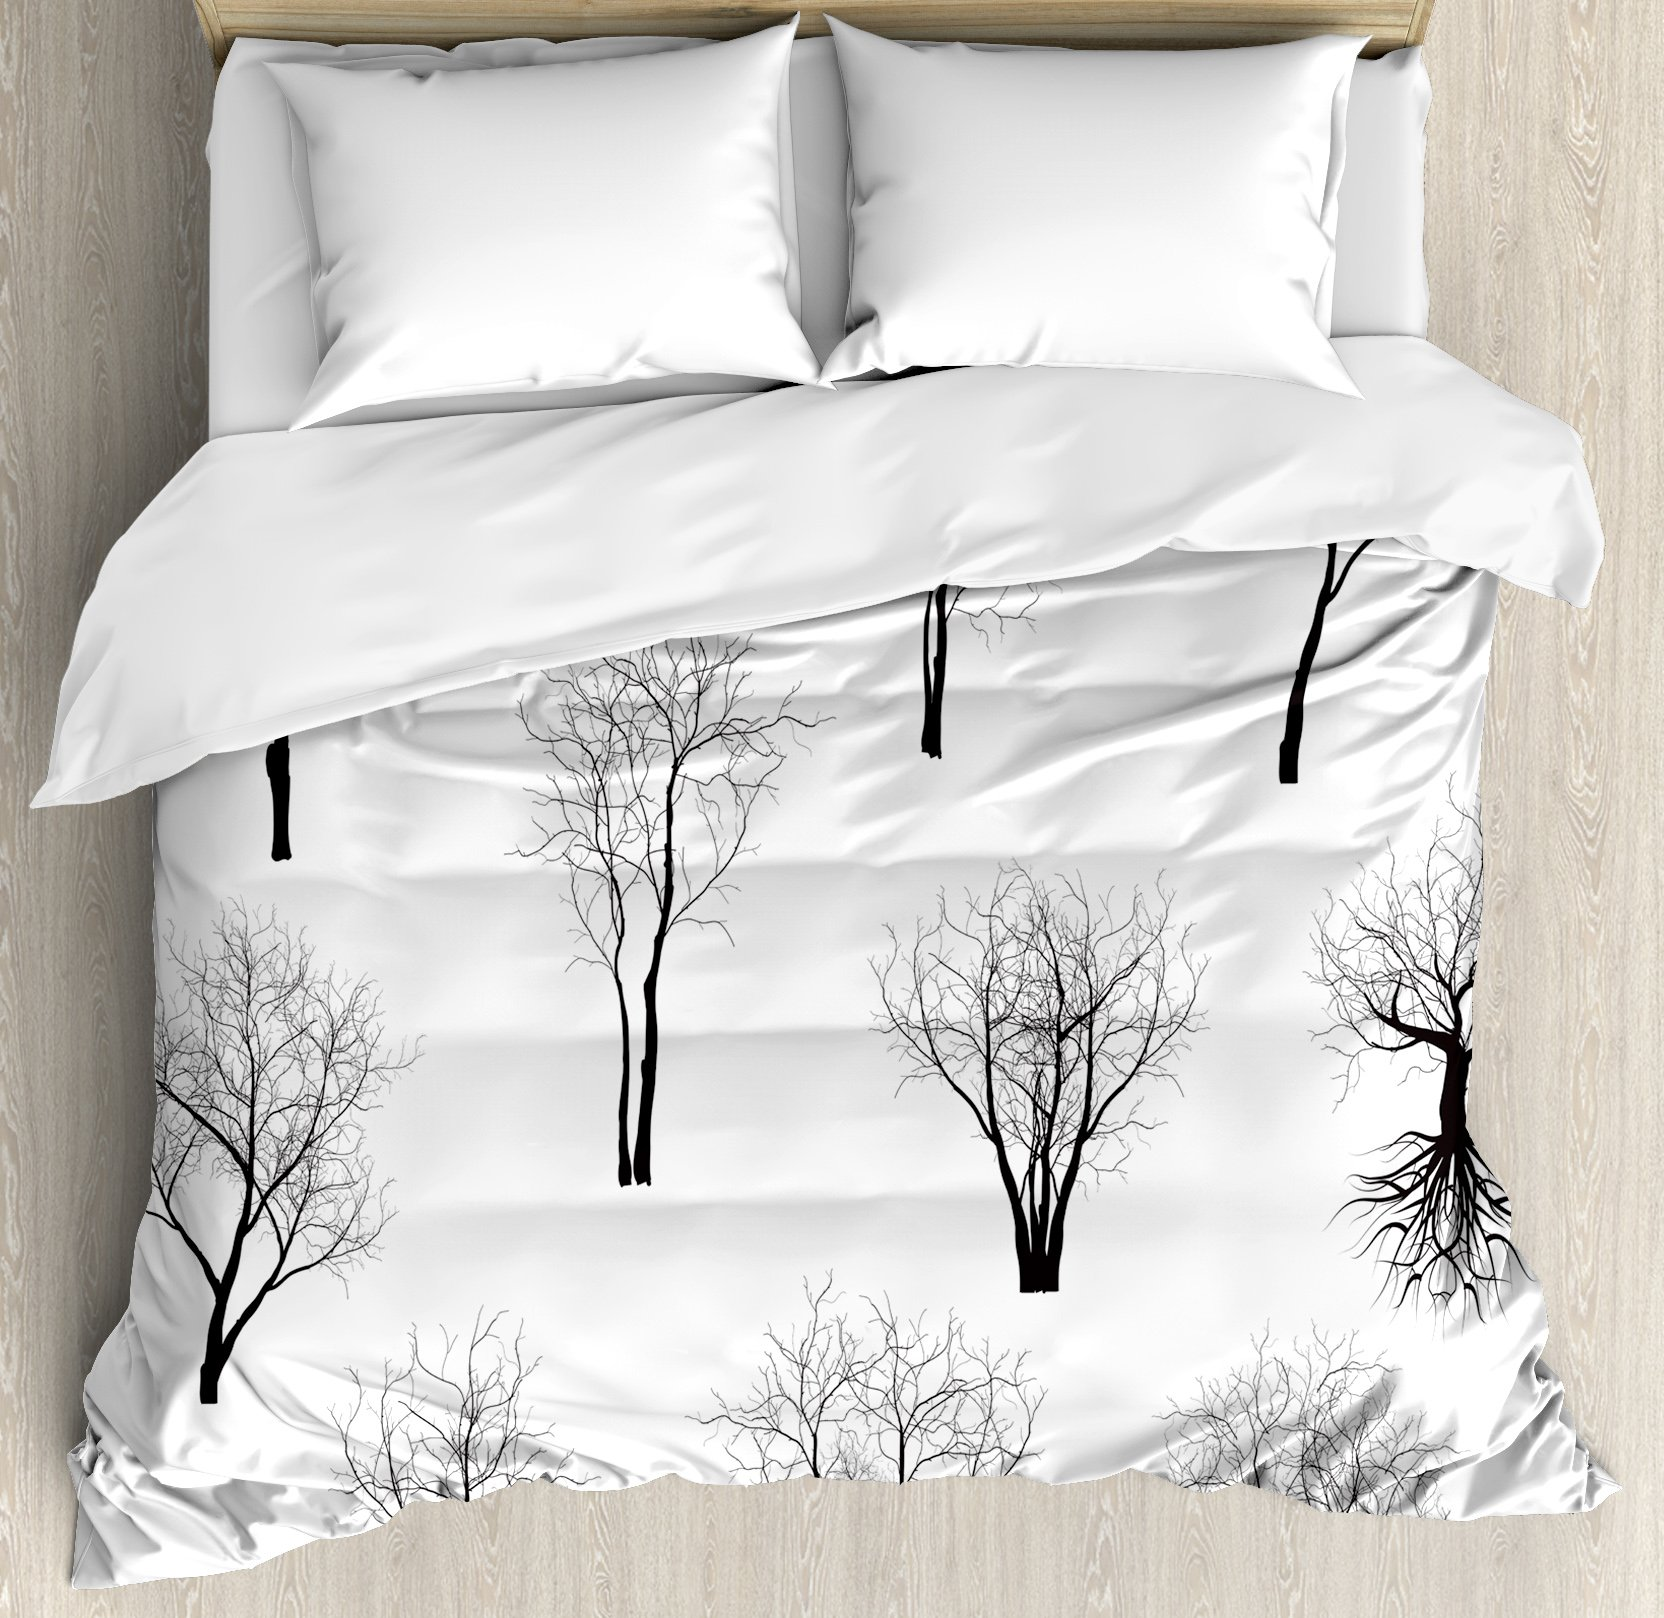 Apartment Decor Duvet Cover Set by Ambesonne, Spooky Horror Movie Themed Branches Forest Trees Nature Art Print, 3 Piece Bedding Set with Pillow Shams, Queen / Full, Black and White